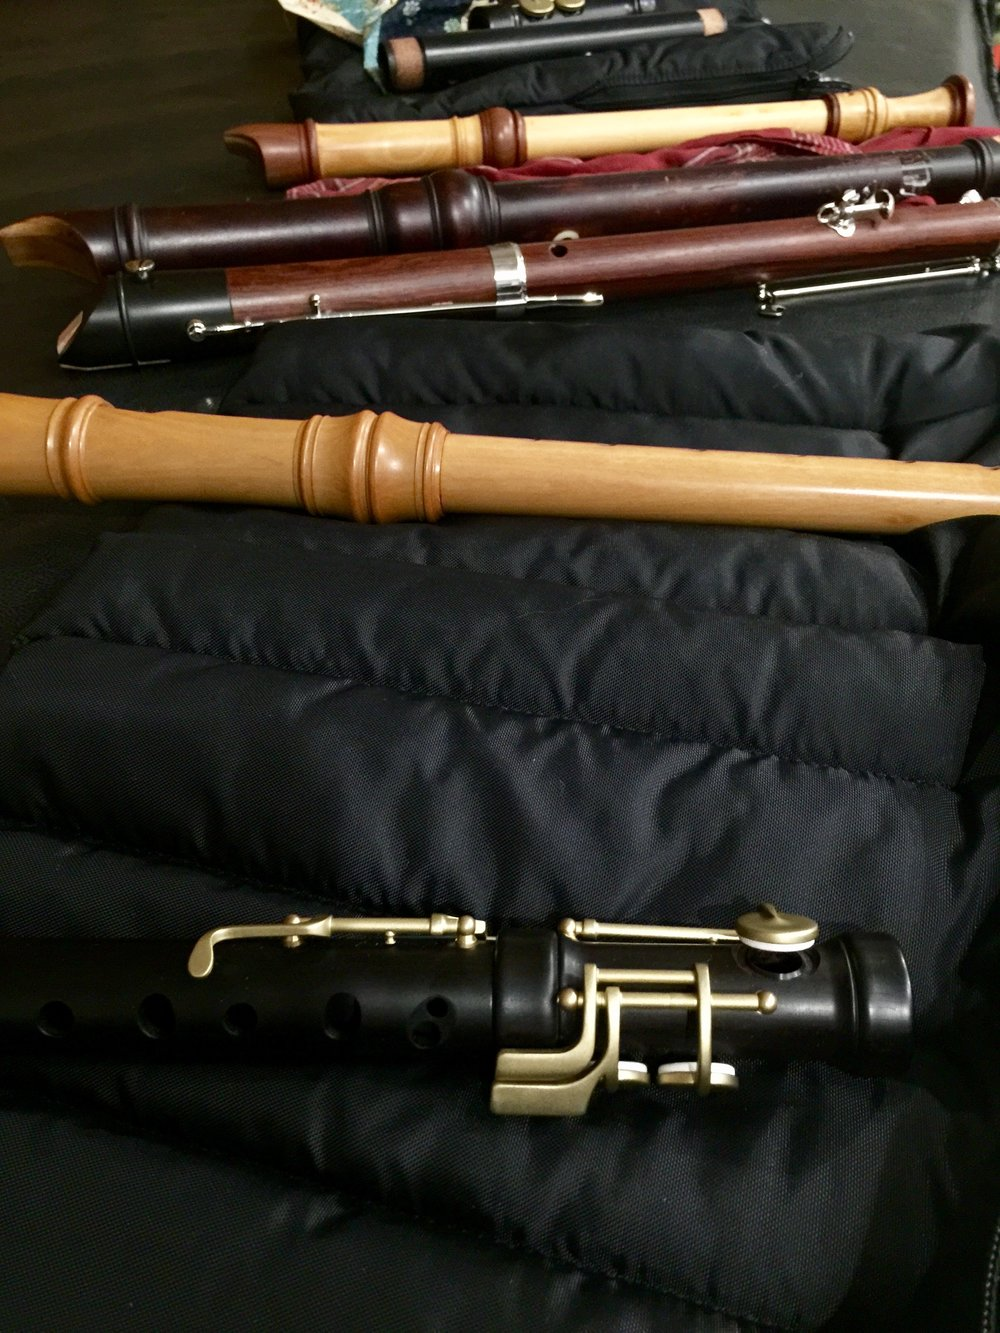 Just a few of the many recorders to be used for the program…